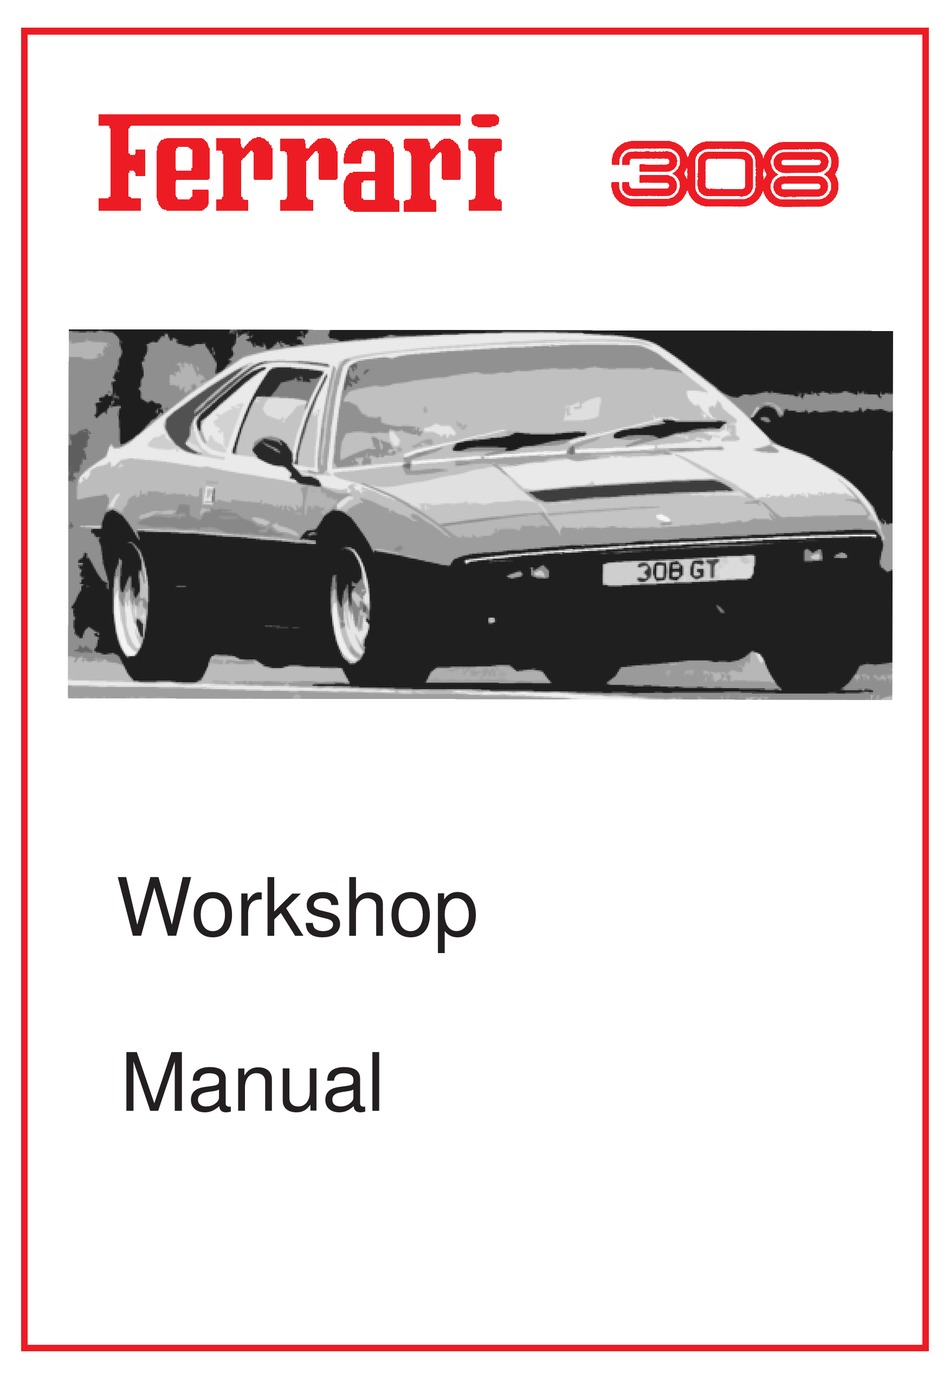 Ferrari Dino 308 Gt4 Workshop Manual Pdf Download Manualslib